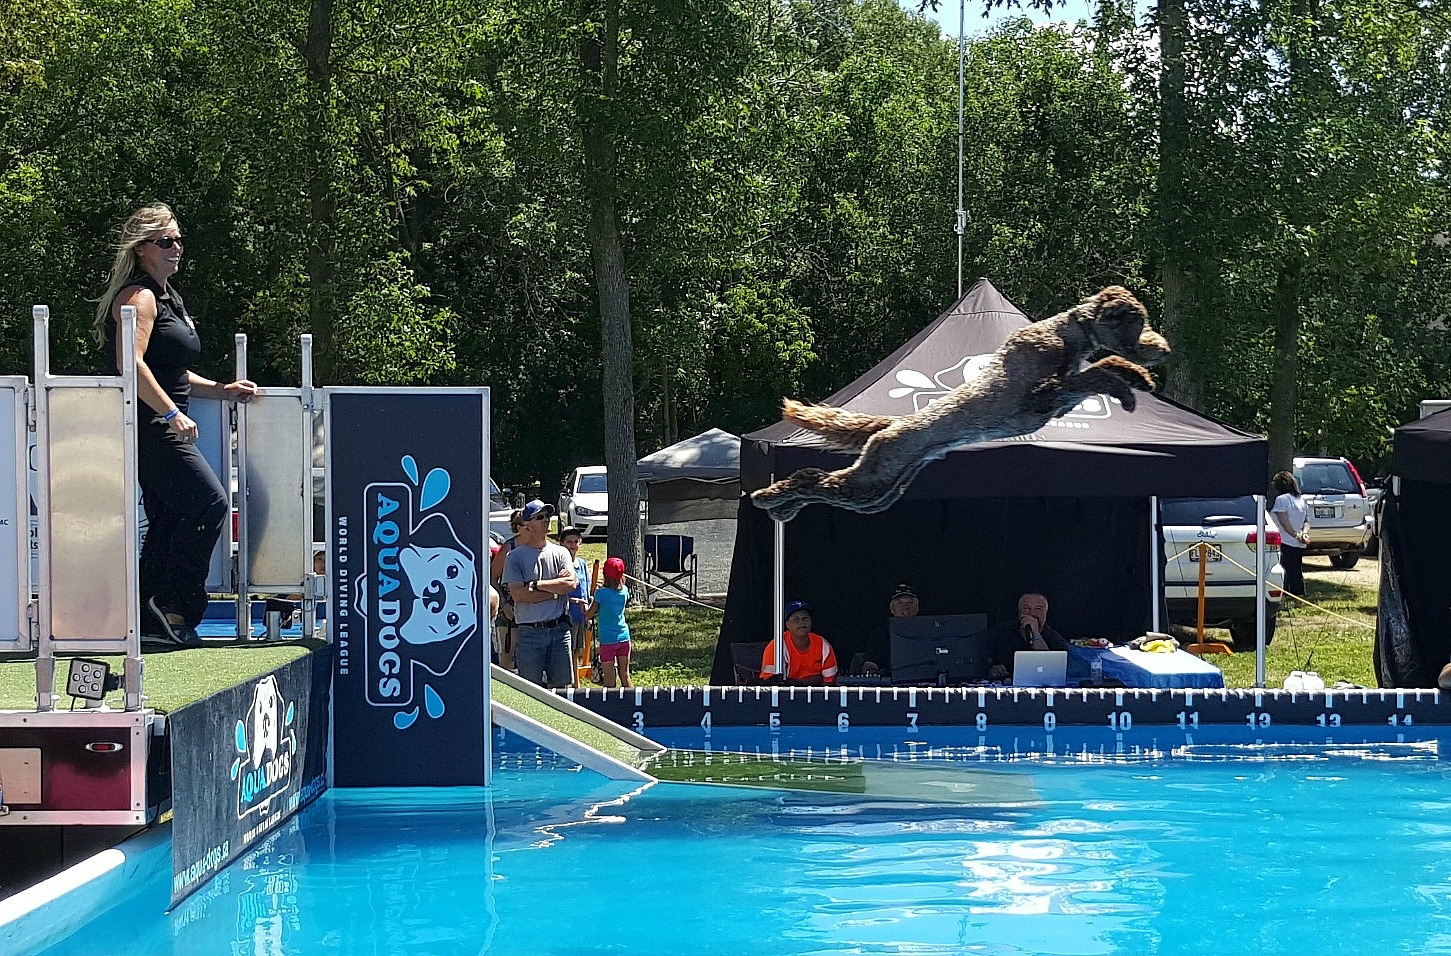 Aqua Dogs Dock Diving Sutton Fair 2016